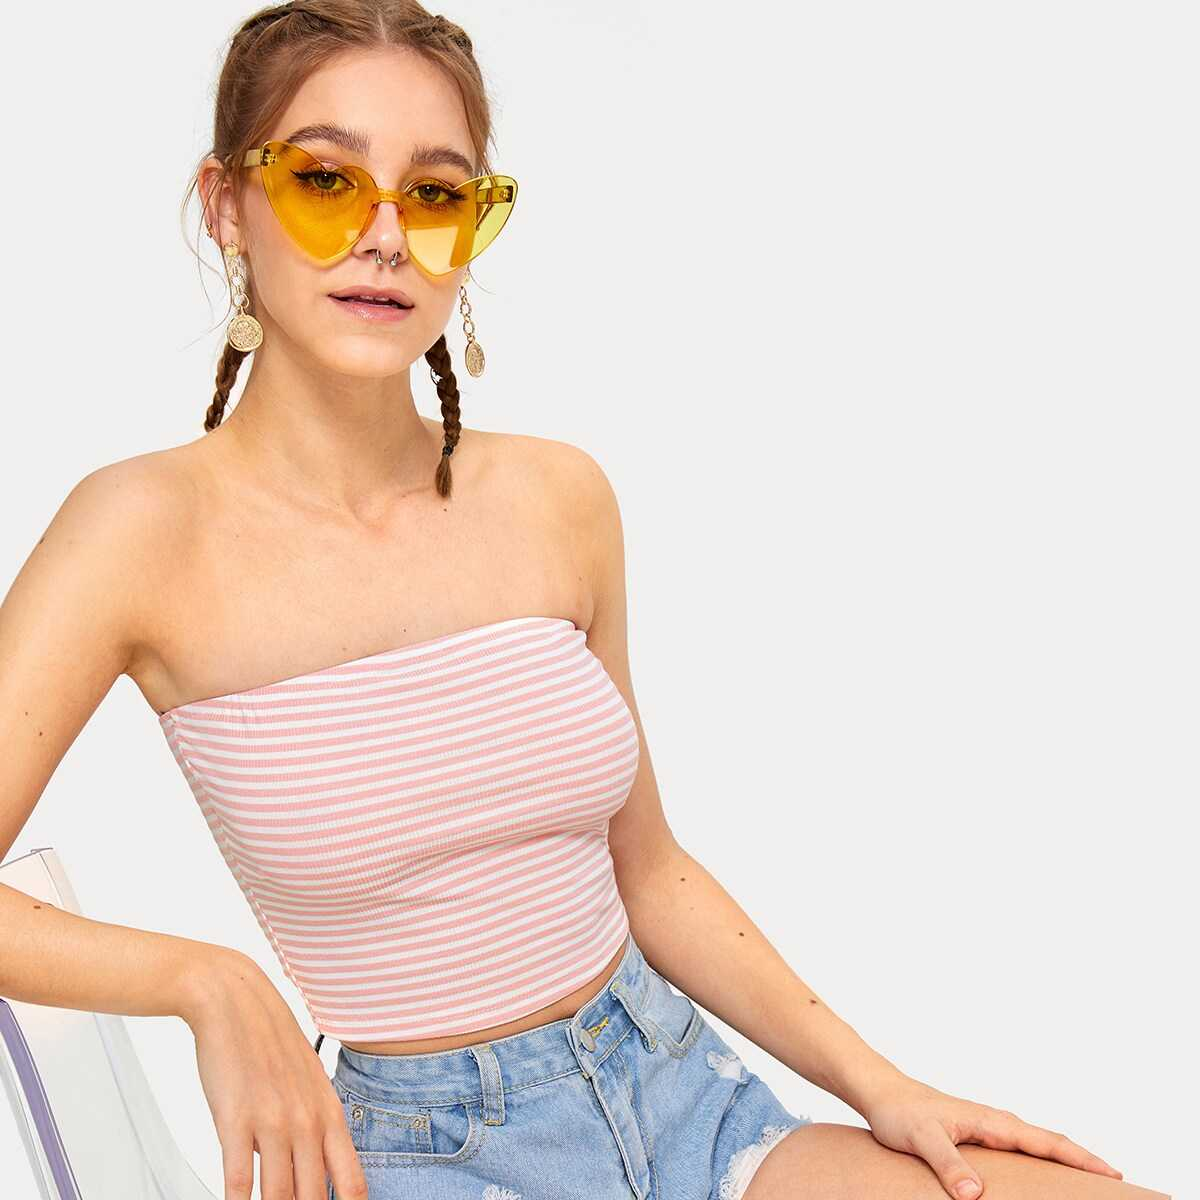 Striped Rib-knit Bandeau in Pink by ROMWE on GOOFASH